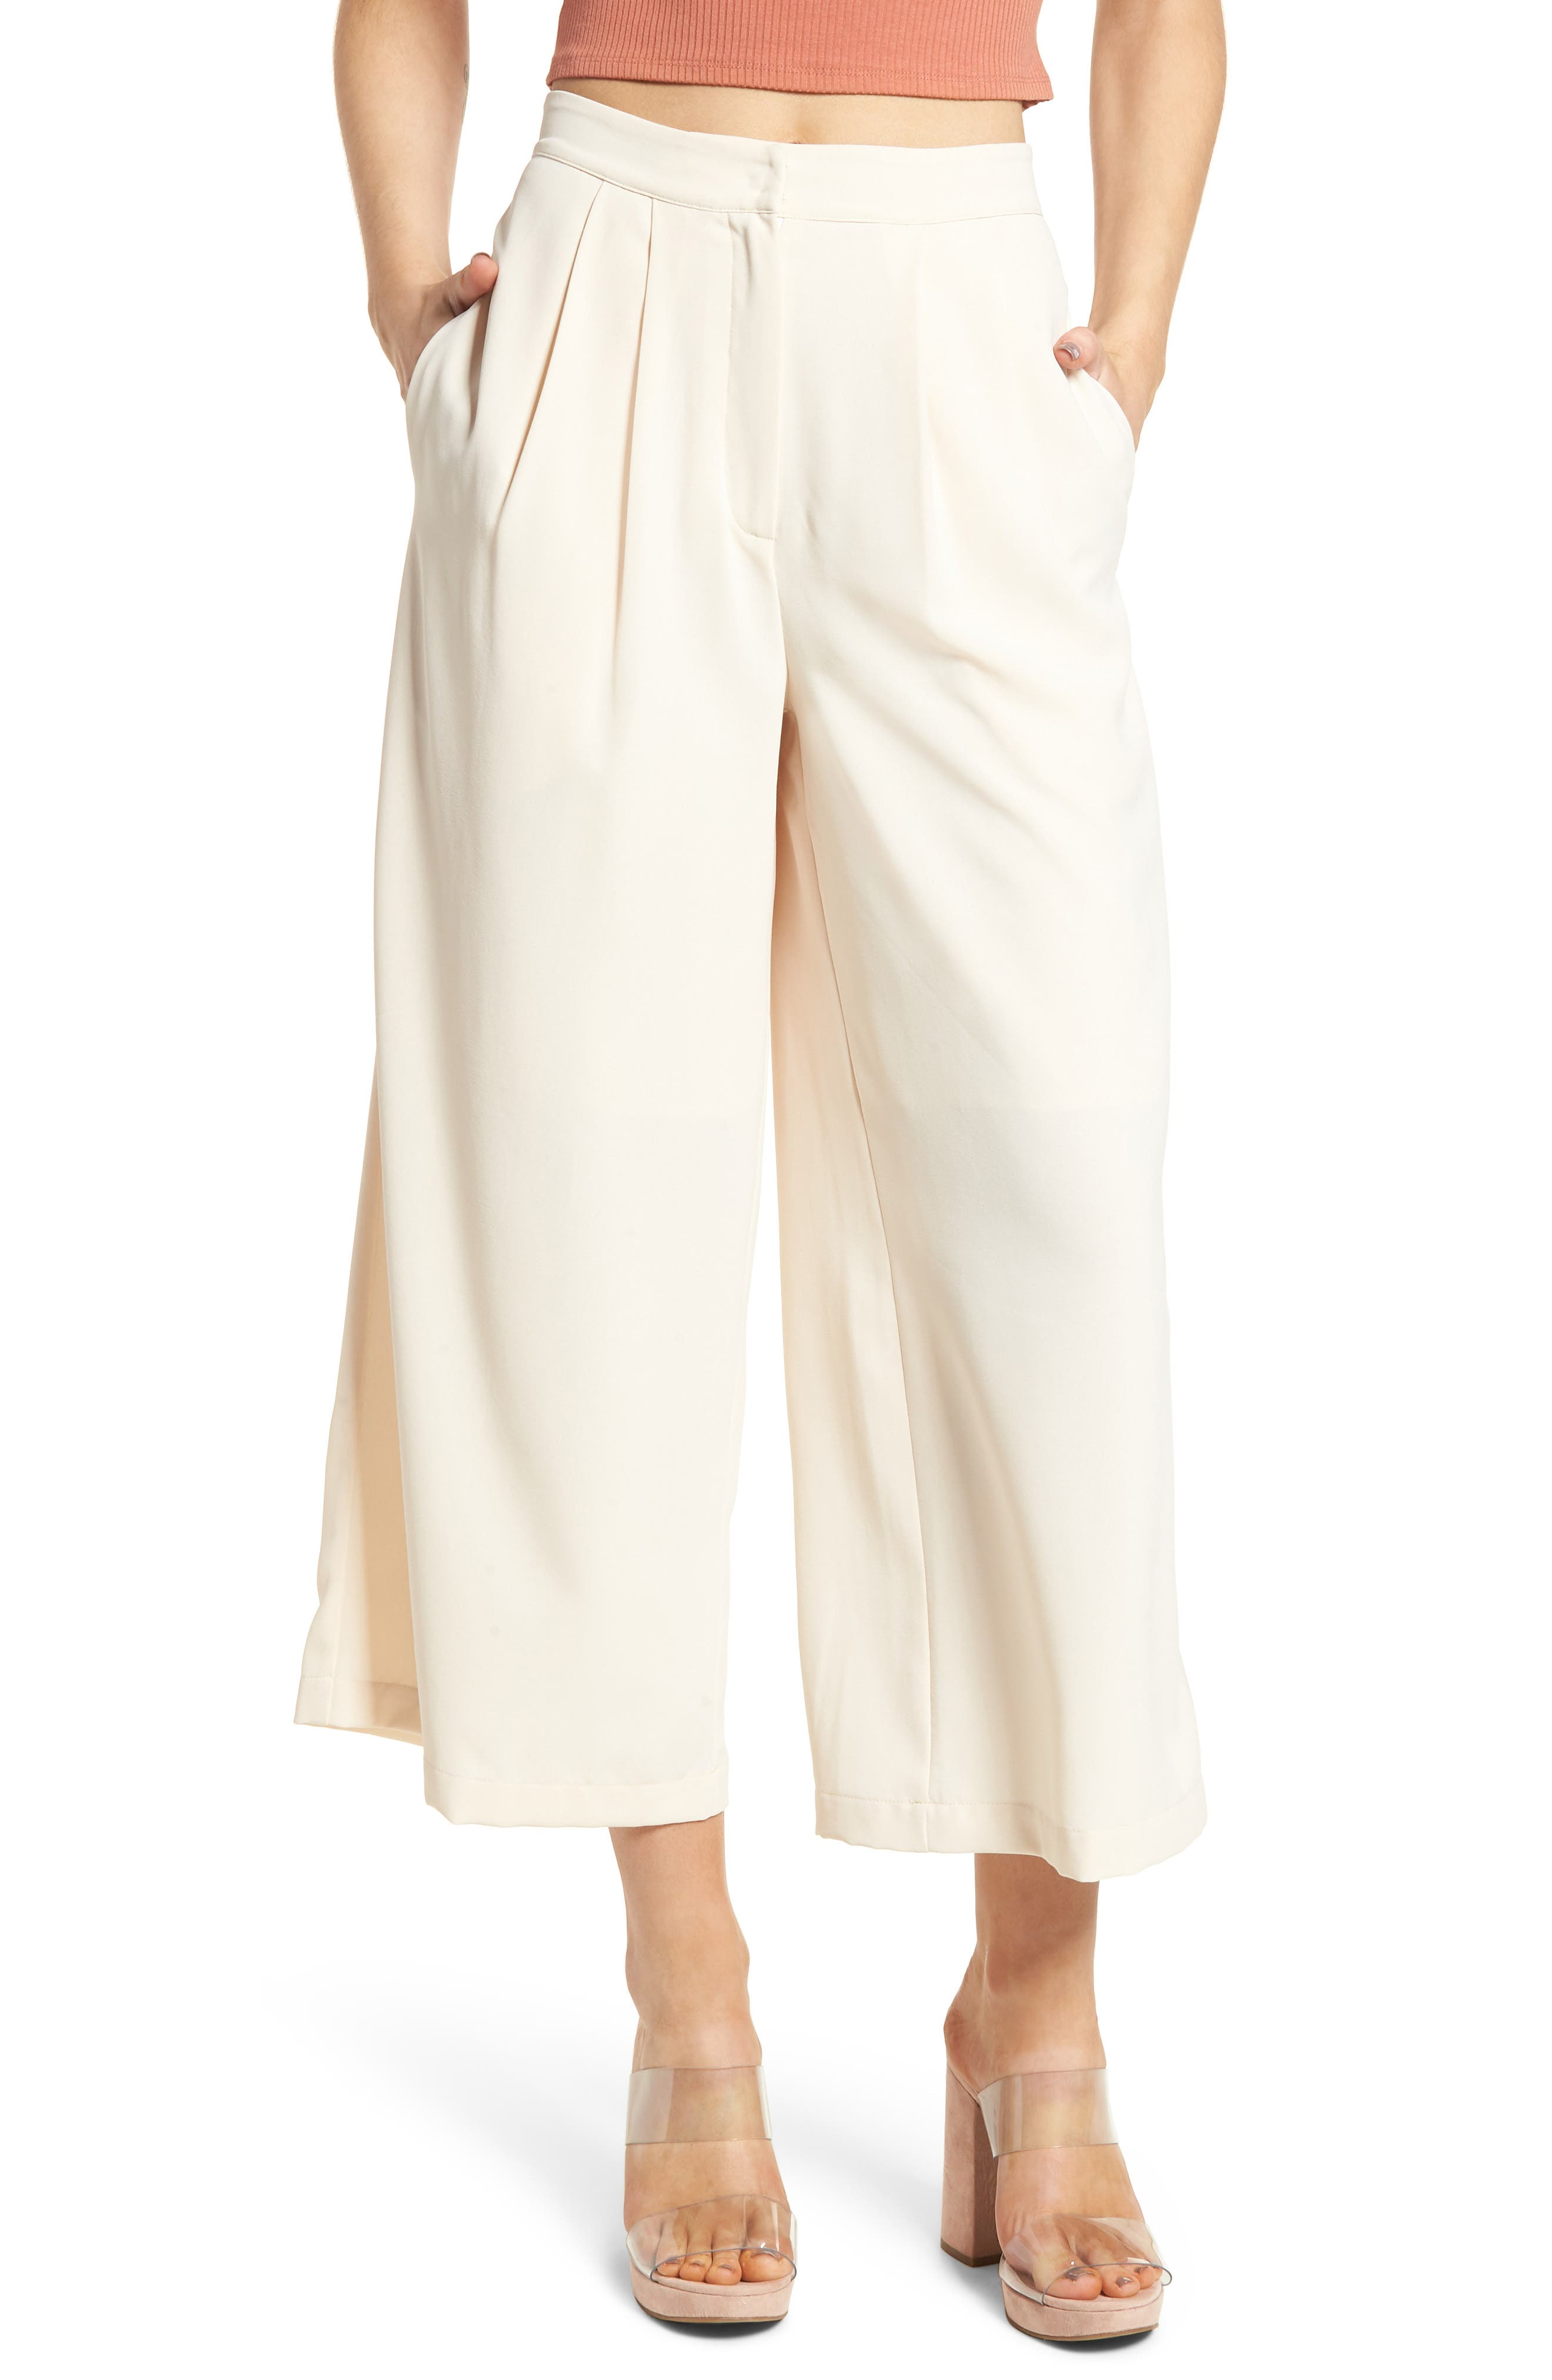 Chriselle x J.O.A. Pleat High Waist Crop Wide Leg Pants,                         Main,                         color, 650